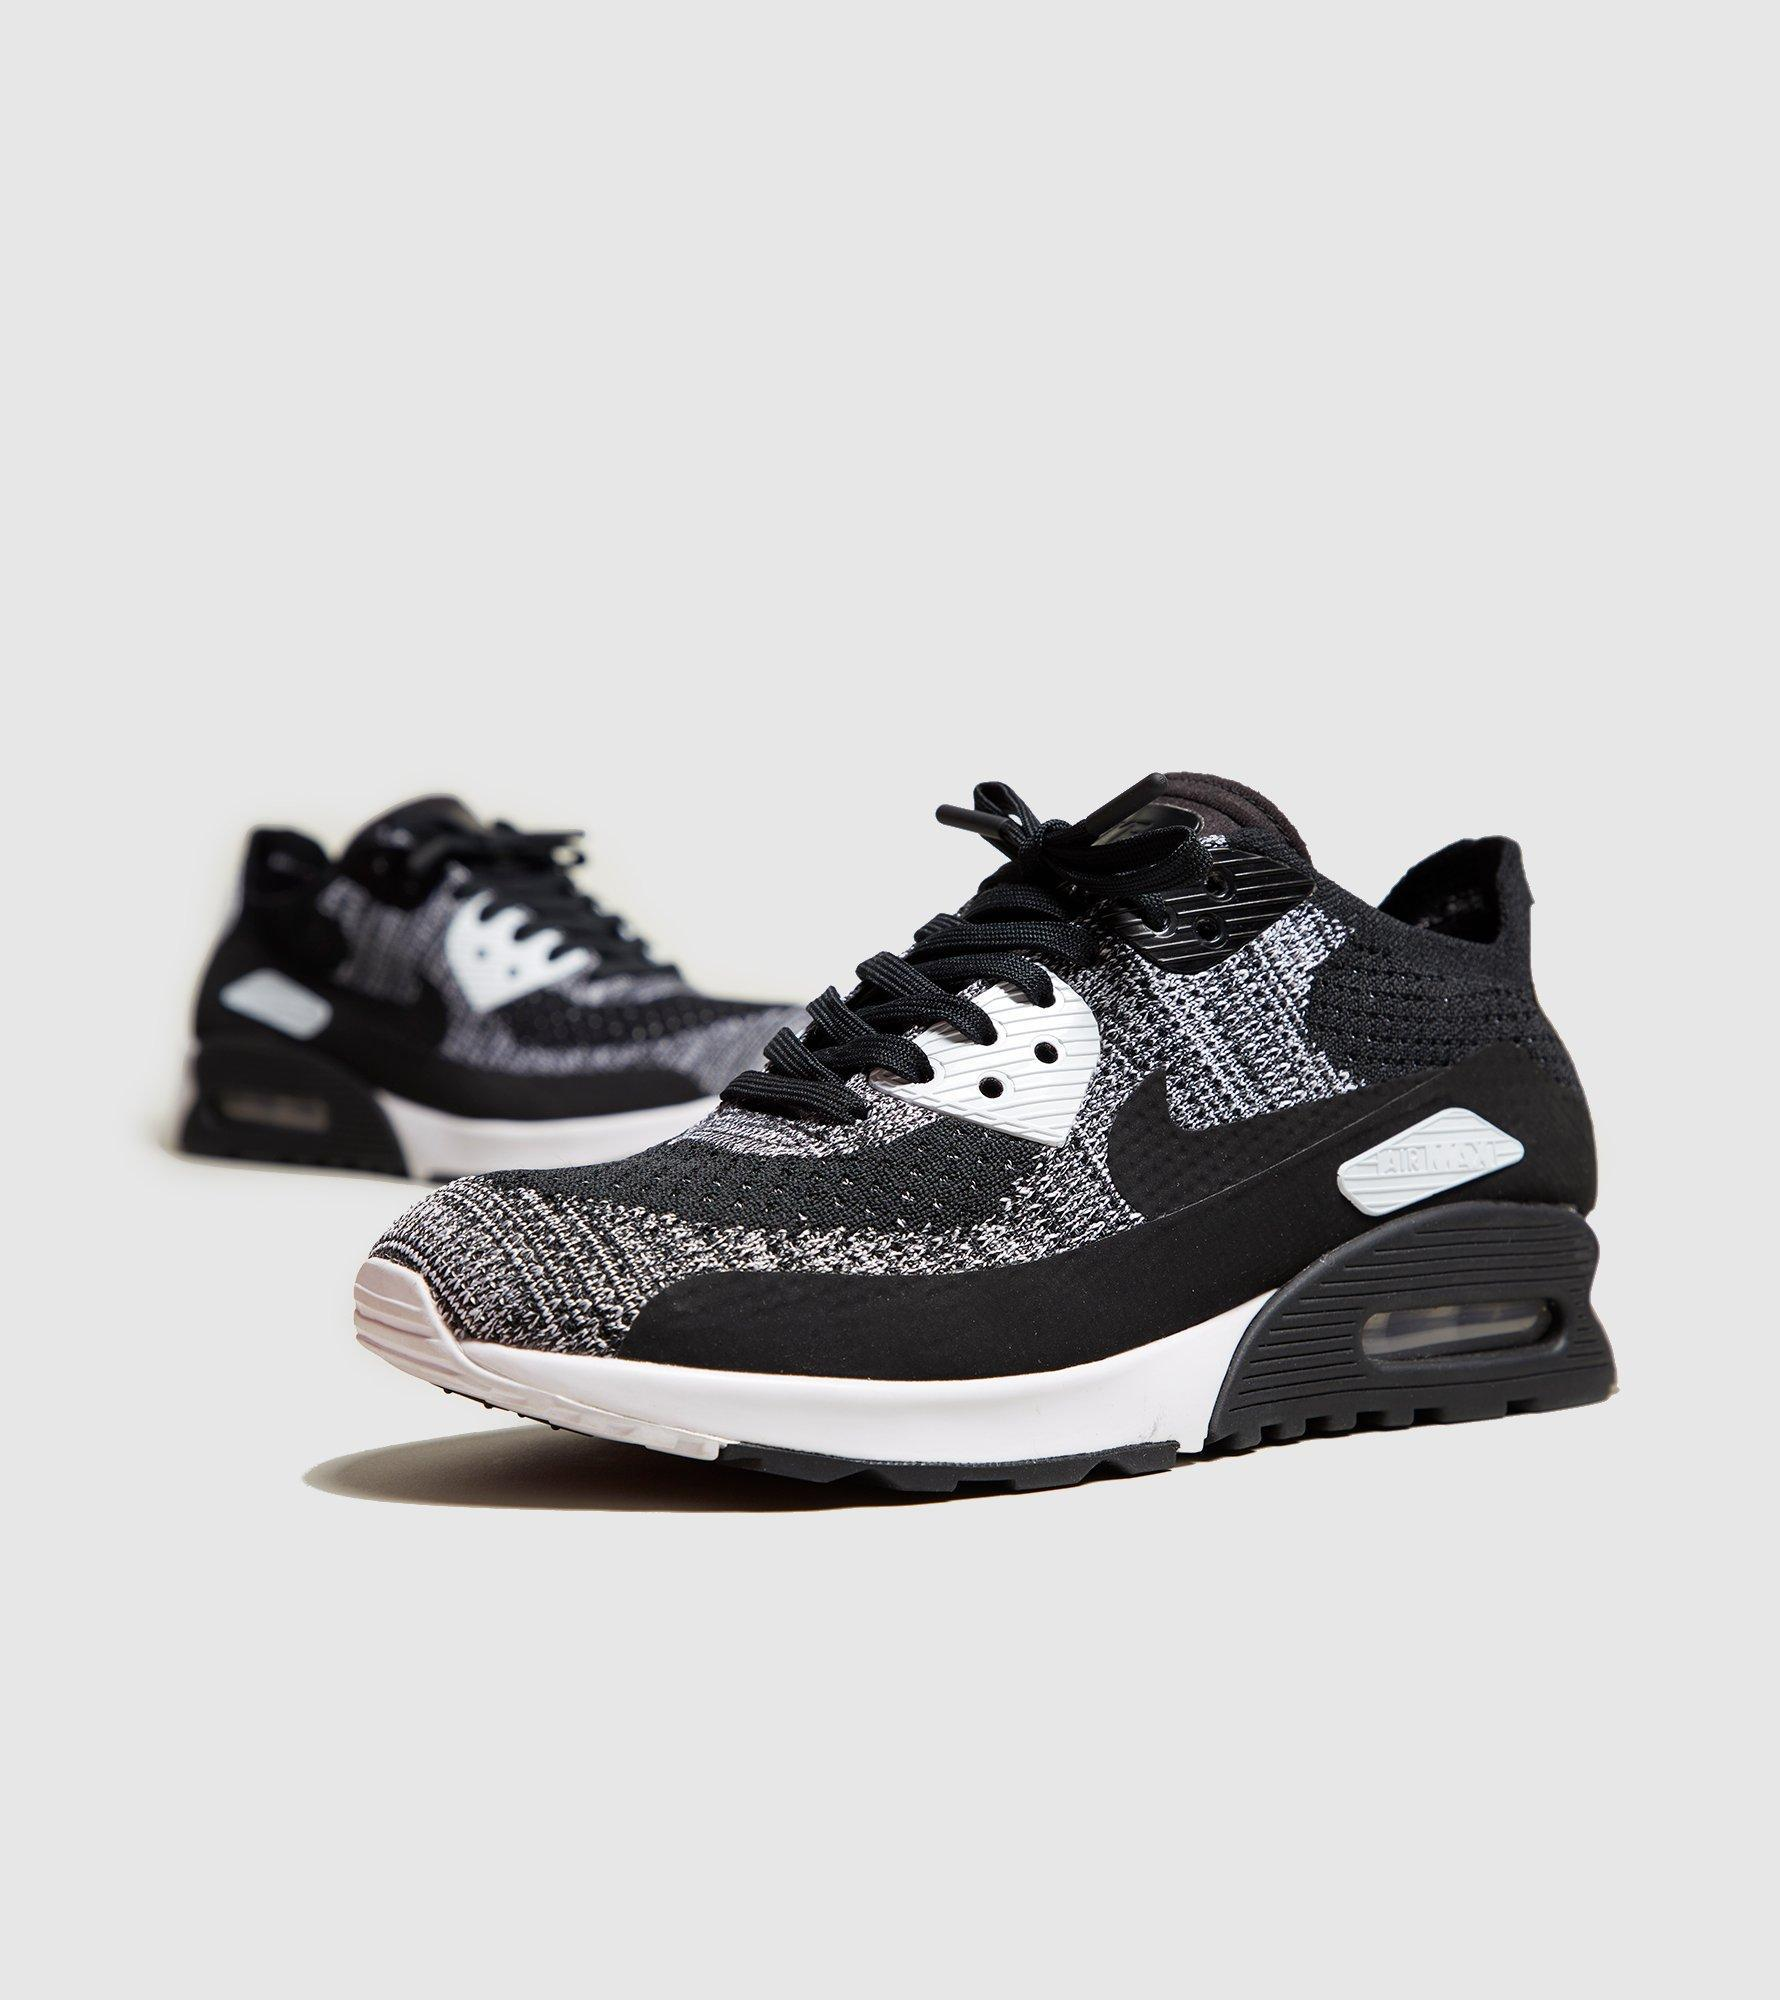 f429f2fbc6d26 where can i buy zapatillas casual de mujer air max thea nike 42b2c 57fd4   discount nike. black air max 90 ultra 2.0 flyknit womens 08aa4 5ef01